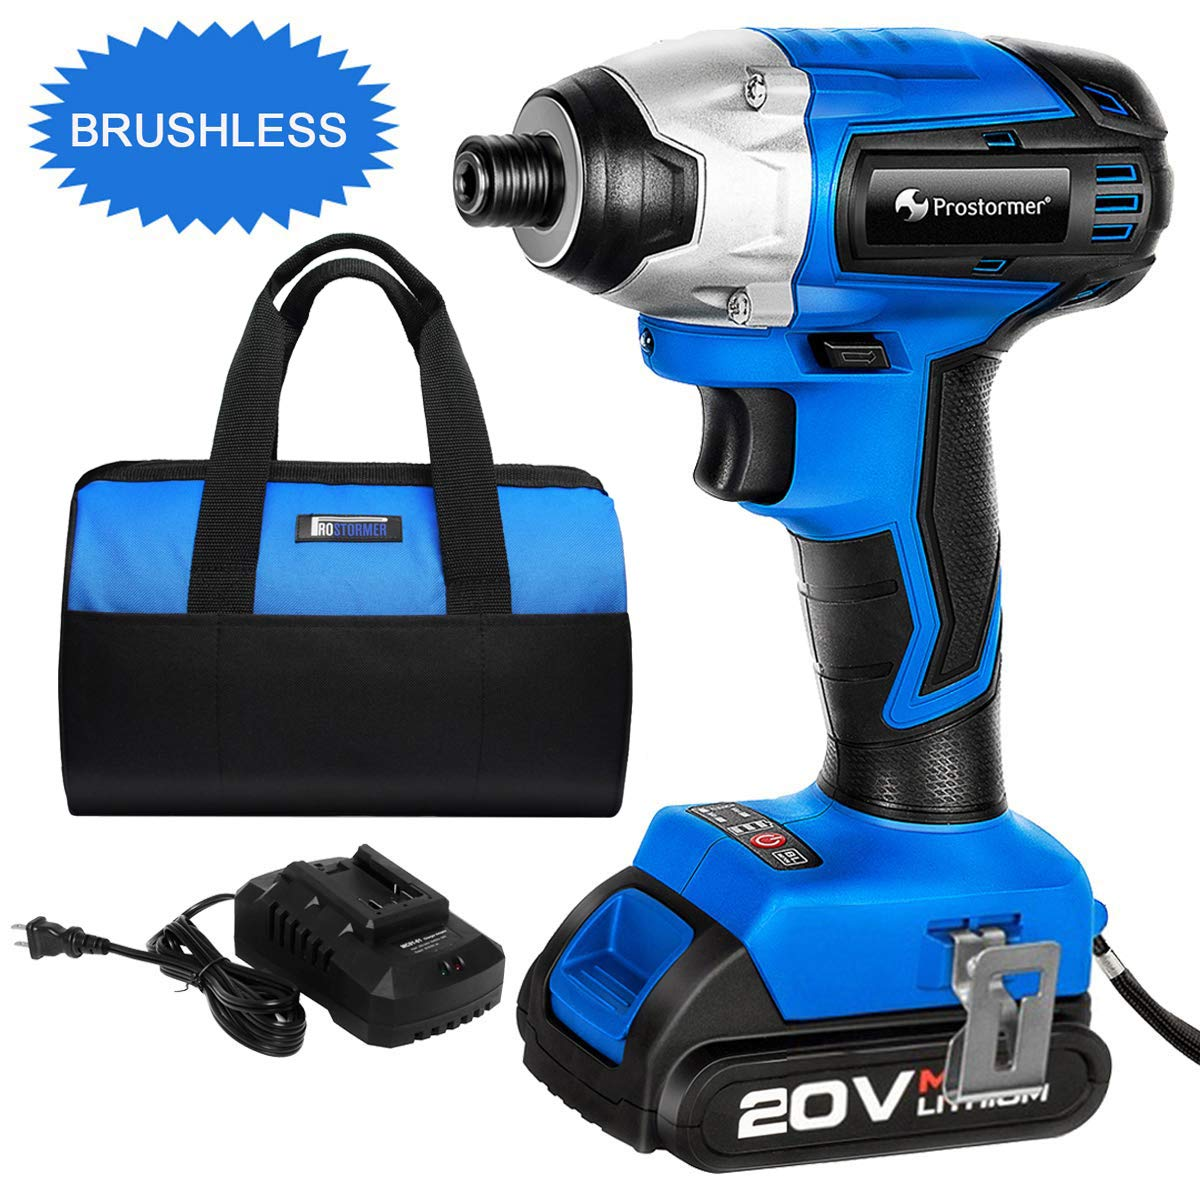 20V Max Lithium Brushless Imapct Driver, PROSTORMER 1/4-Inch Hex Cordless Impact Driver with Battery and Charger, Variable Speed, Max Torque 1327In-lbs, Tool Bag Included